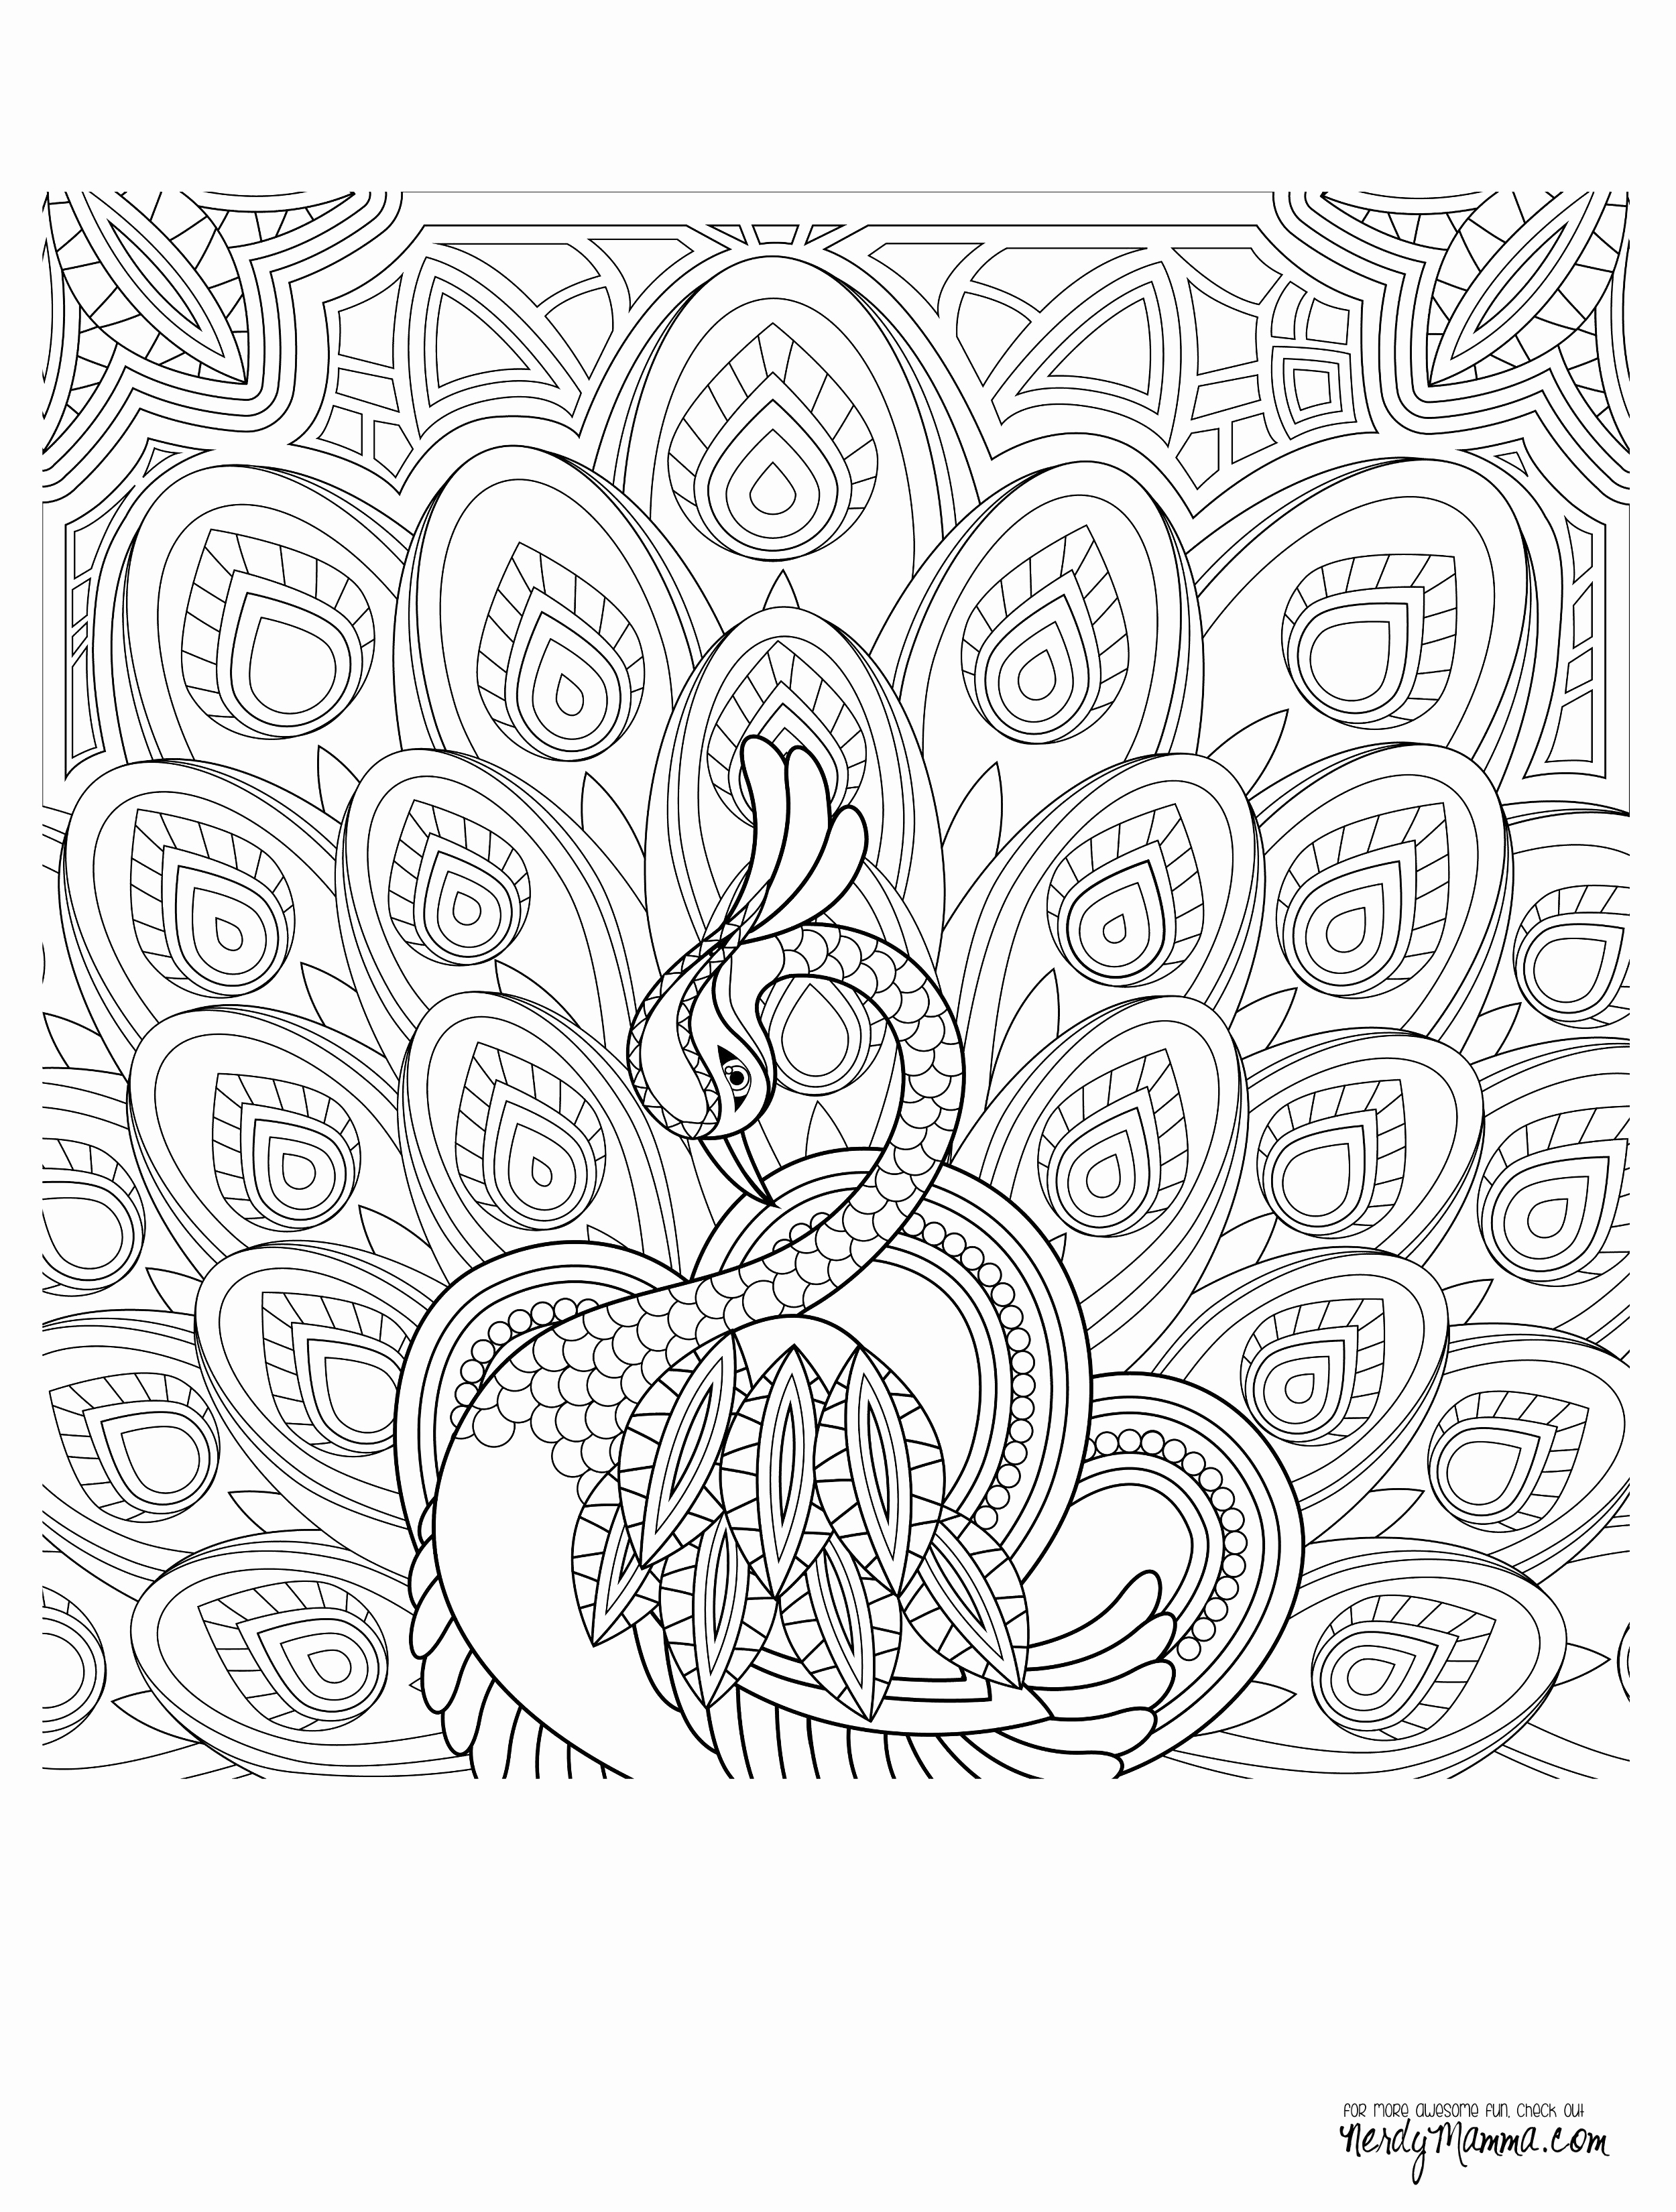 Turtles - Coloring Pages for Adults   3300x2500